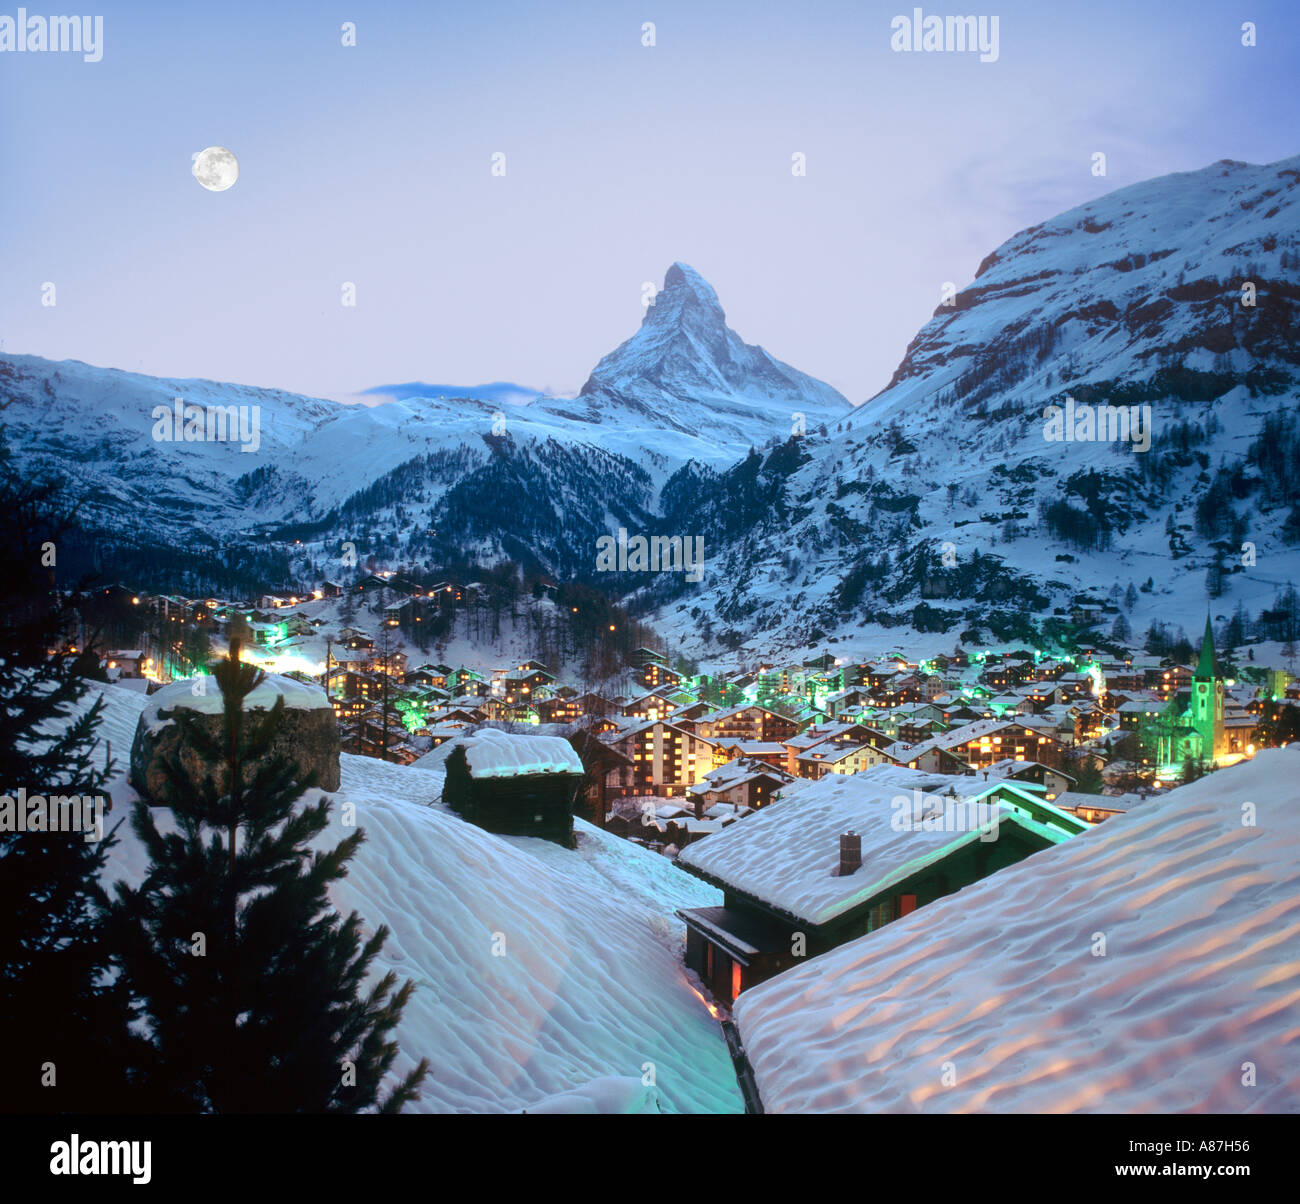 View over the resort towards the Matterhorn at dusk, Zermatt, Switzerland - Stock Image